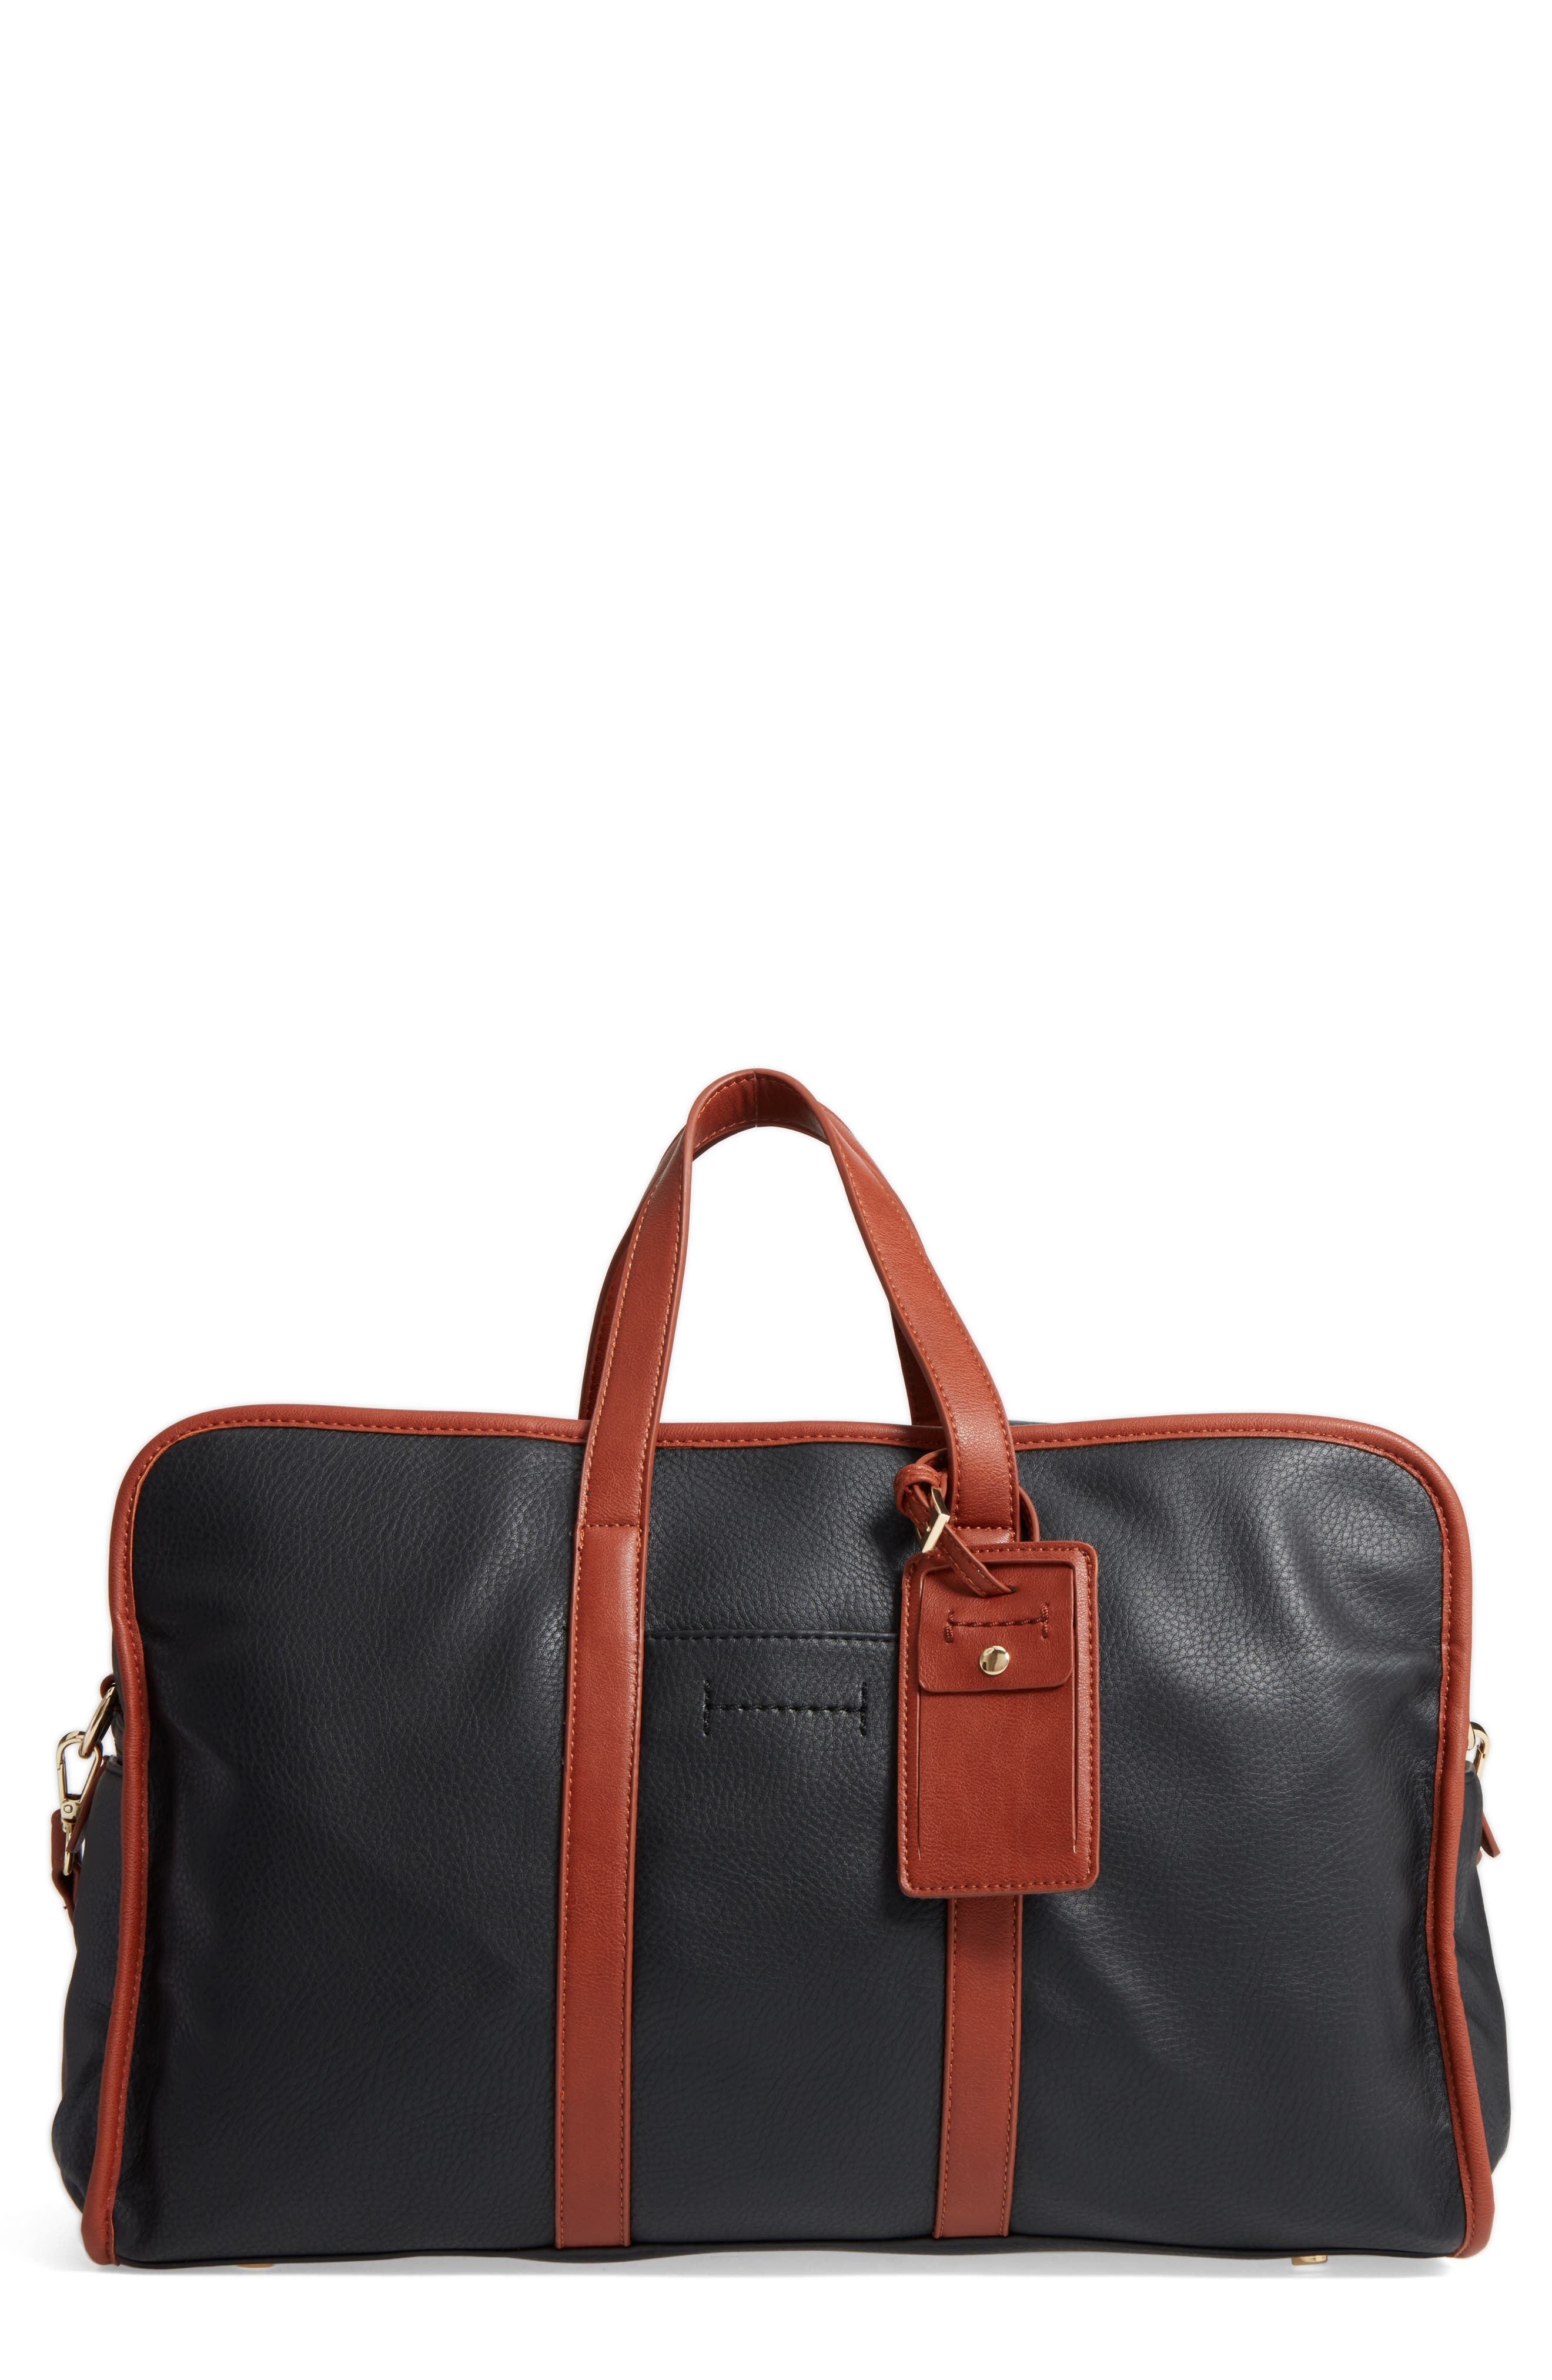 Main Image - Sole Society Doxin Faux Leather Duffel Bag